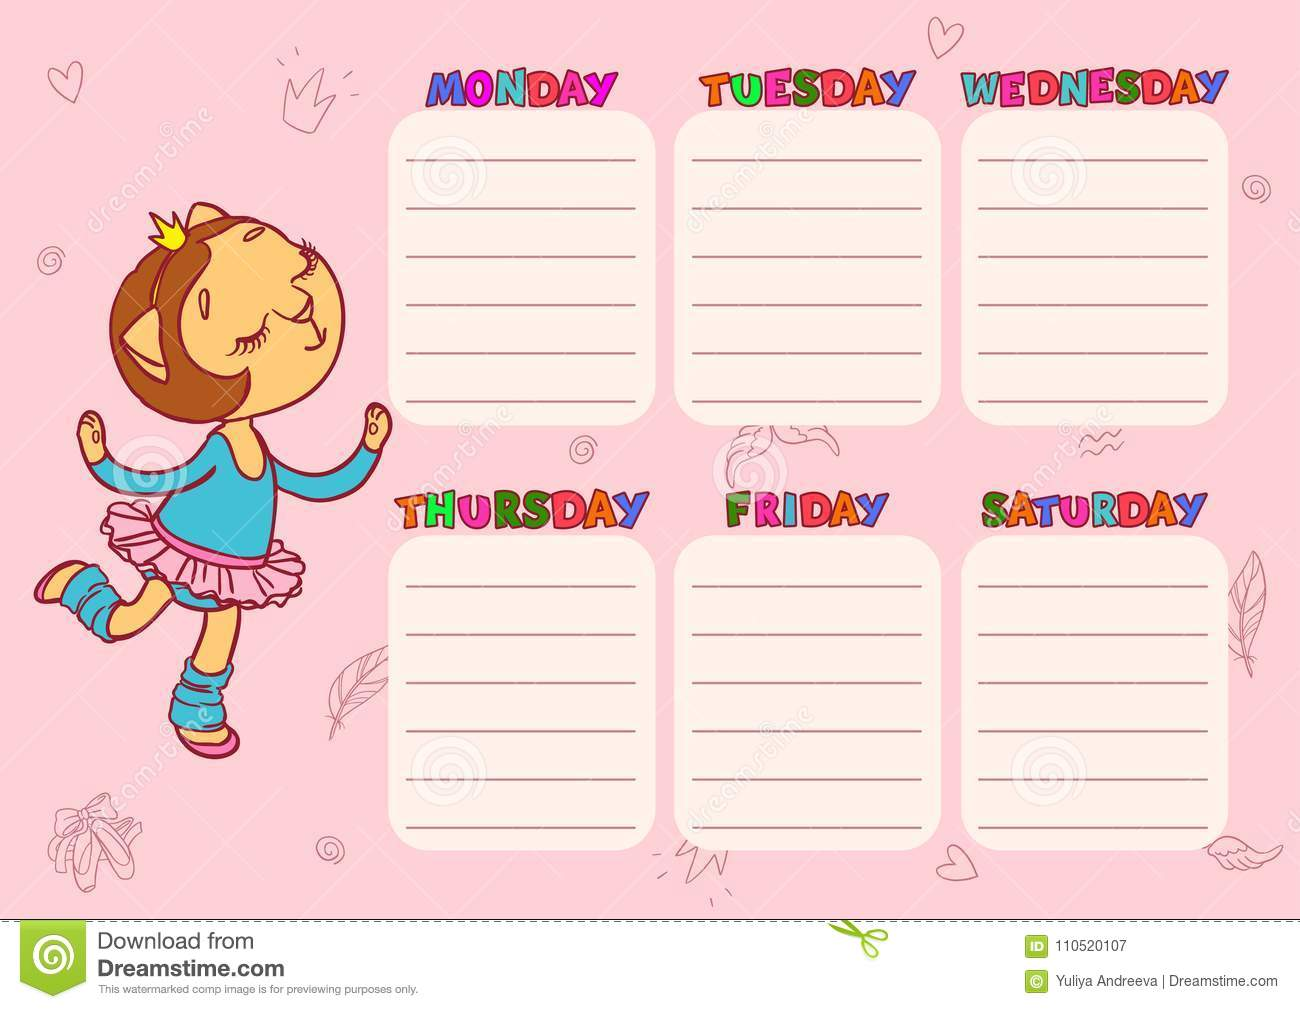 download daily schedule for children vector template for school with cute cat girl stock